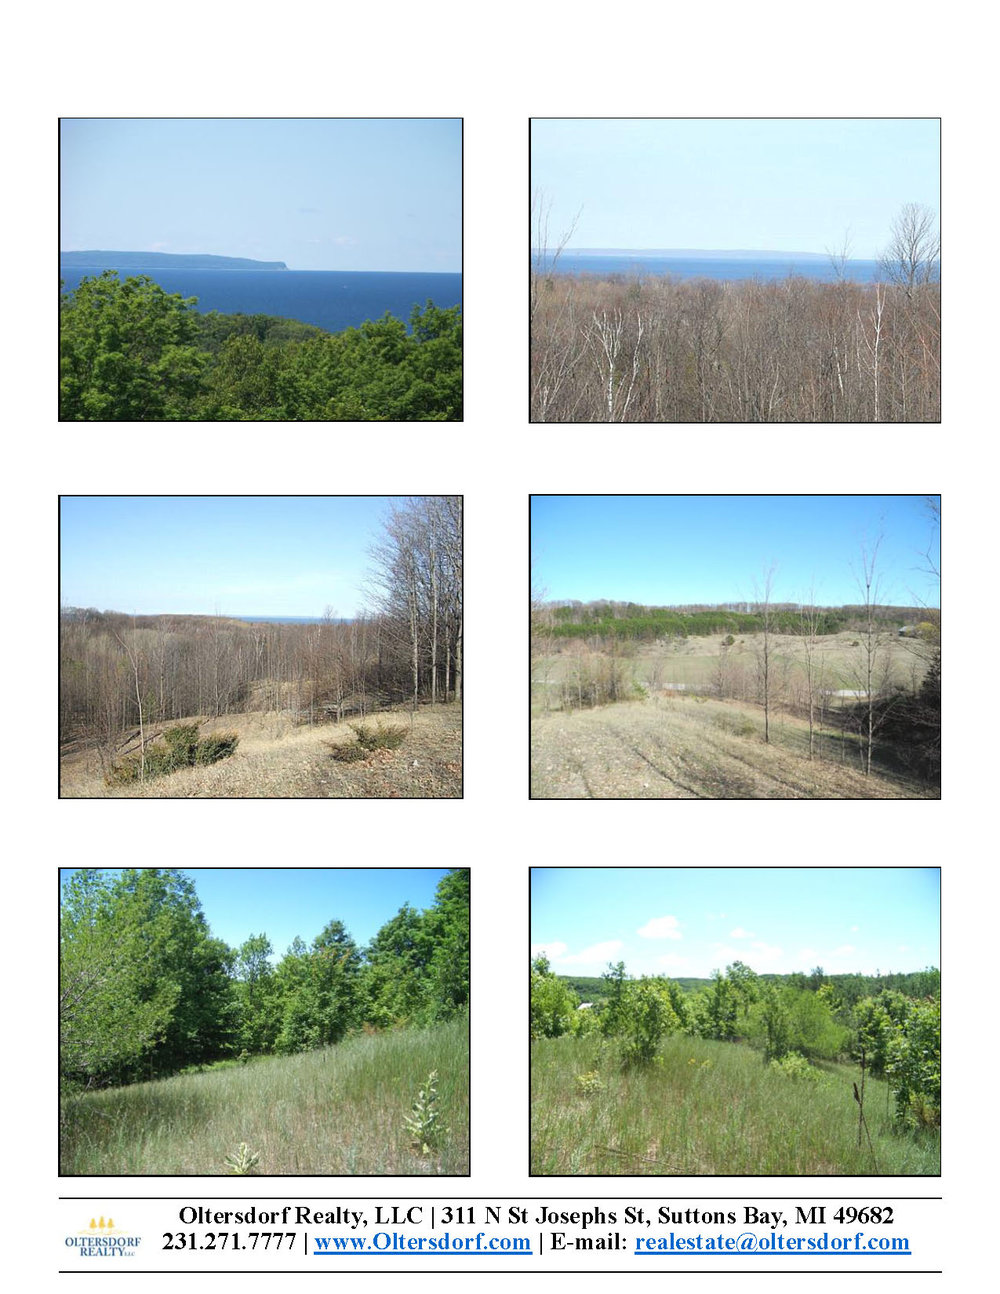 N Manitou Trail, Northport, Leelanau County, Vacant 10.07 Acreage parcel for sale by Oltersdorf Realty LLC (2).jpg